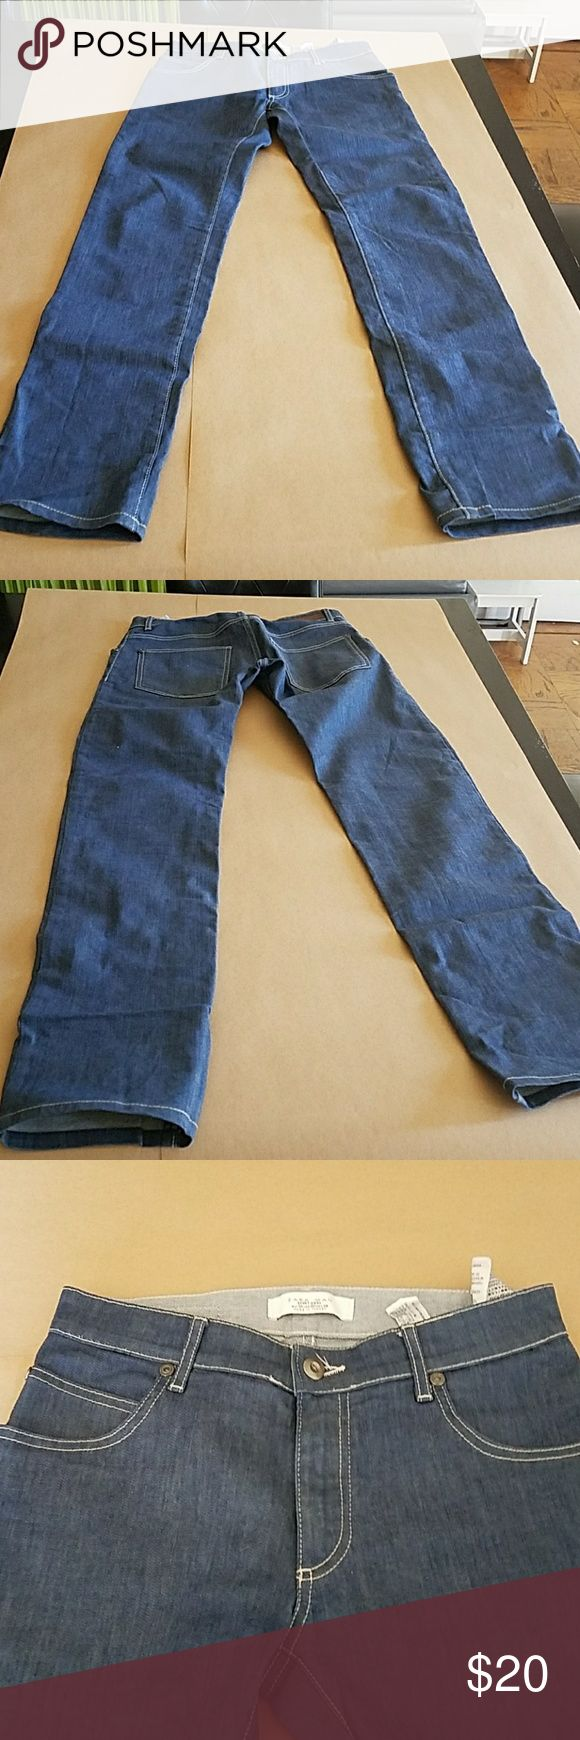 Men's Jeans Zara Man Jeans. In great condition. Blue jean with white stitching. Zara Pants